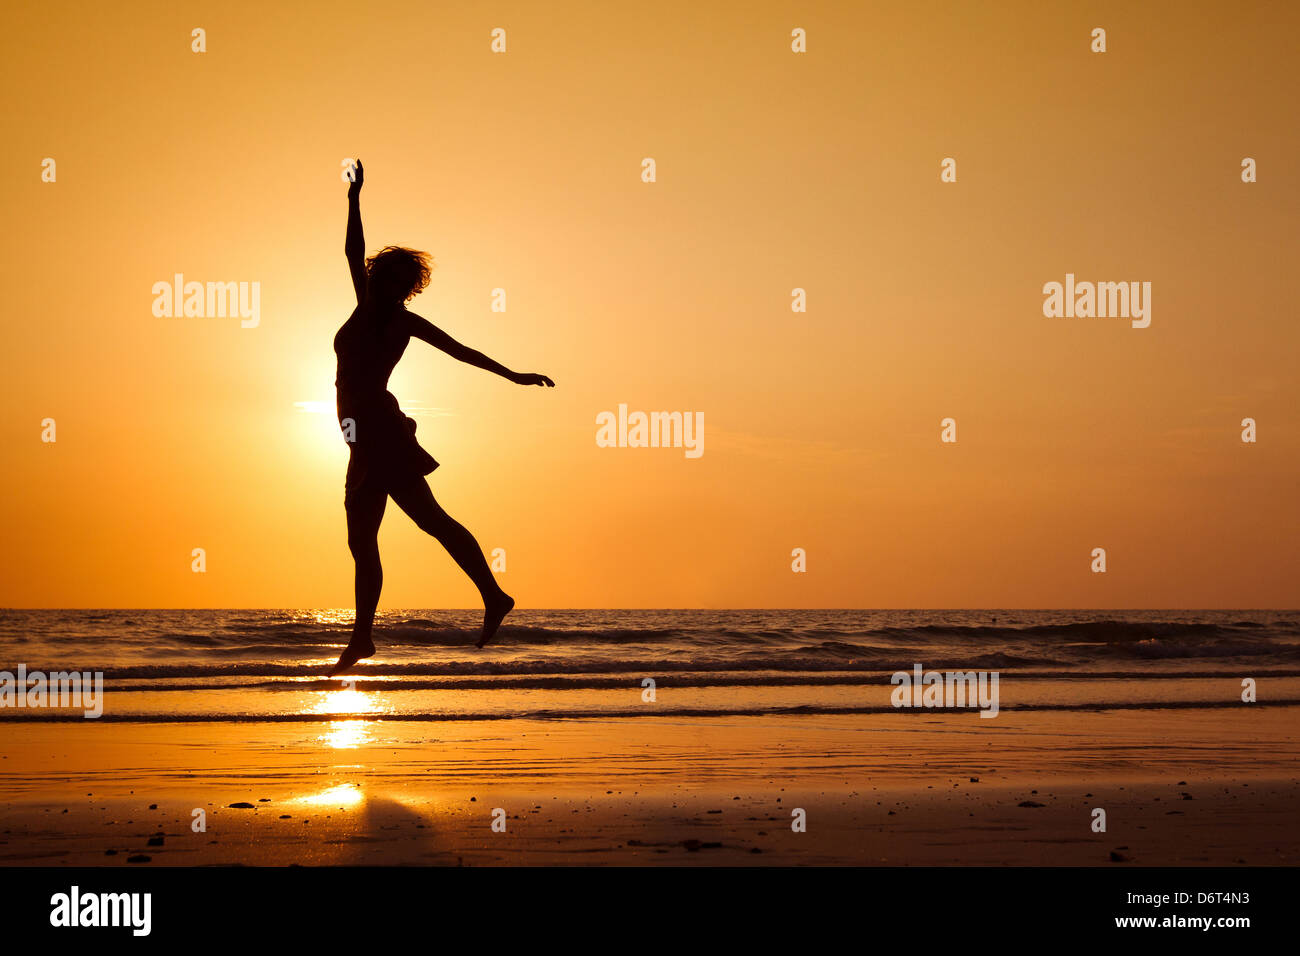 Silhouette of woman jumping on the beach, mode de vie sain Photo Stock